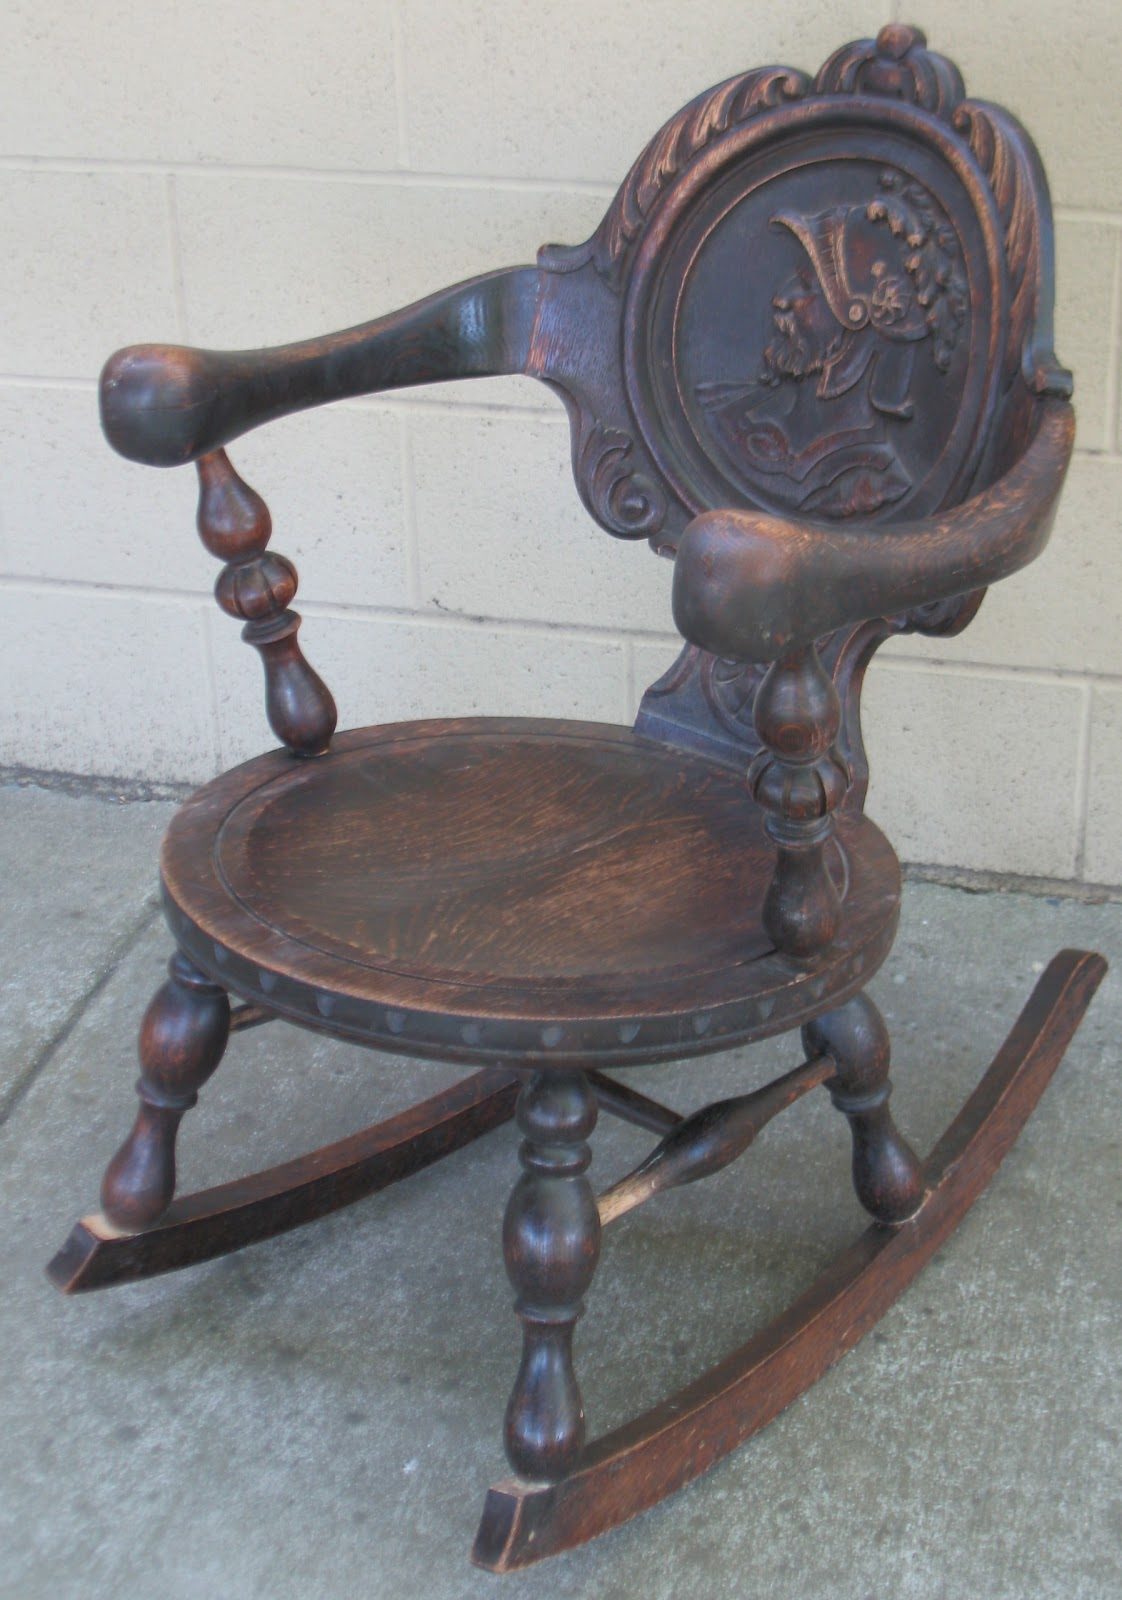 Rocking Chair with Carved Back Panel - The Craftsman: Rocking Chair With Carved Back Panel